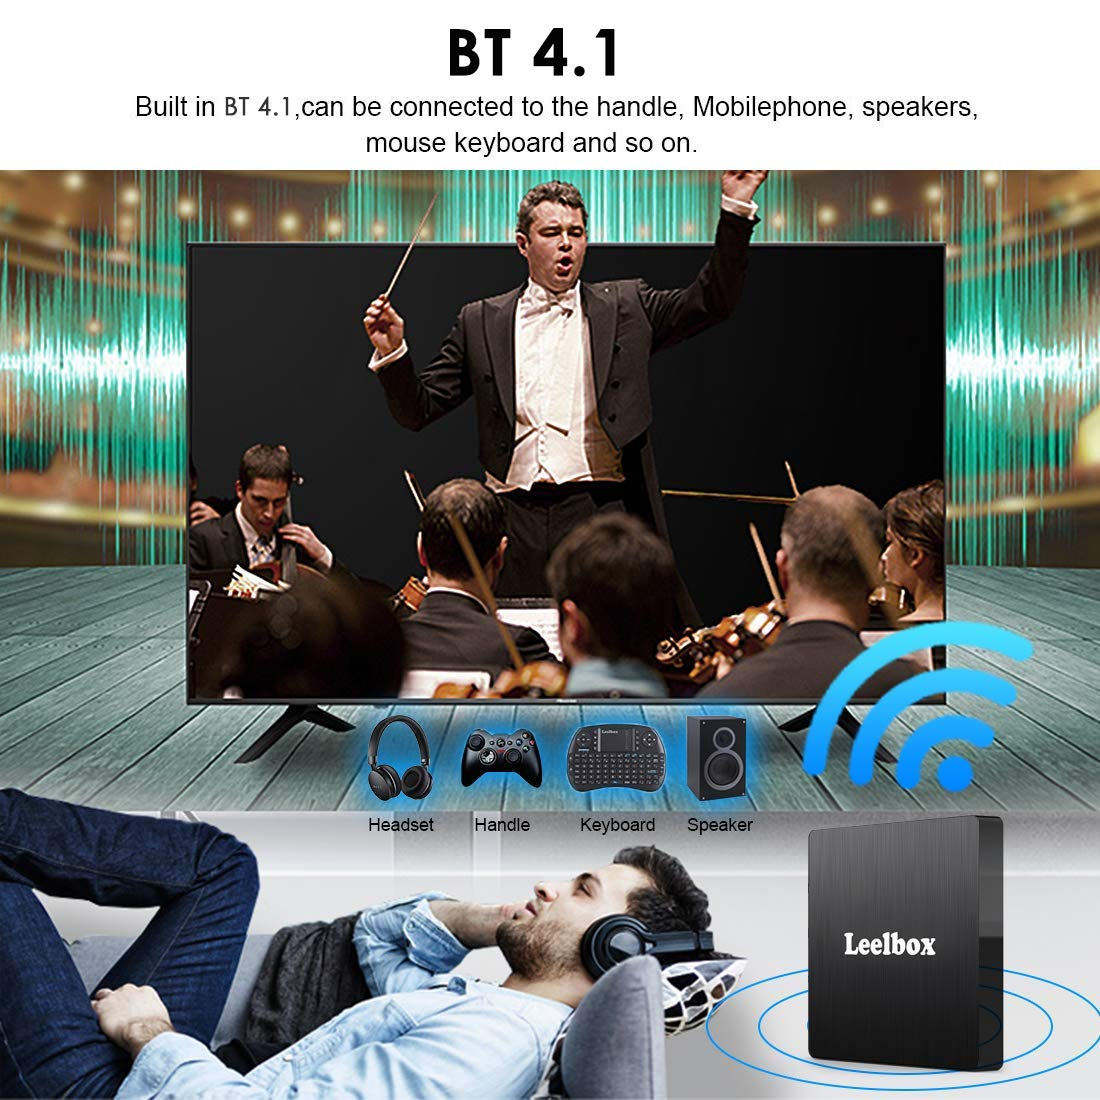 Android TV Box 8.1, 4GB RAM+64GB ROM Leelbox Q4 MAX Quad-Core 2.4GHz Support BT 4.1/WiFi/3D/4K/H.265 by Leelbox (Image #4)